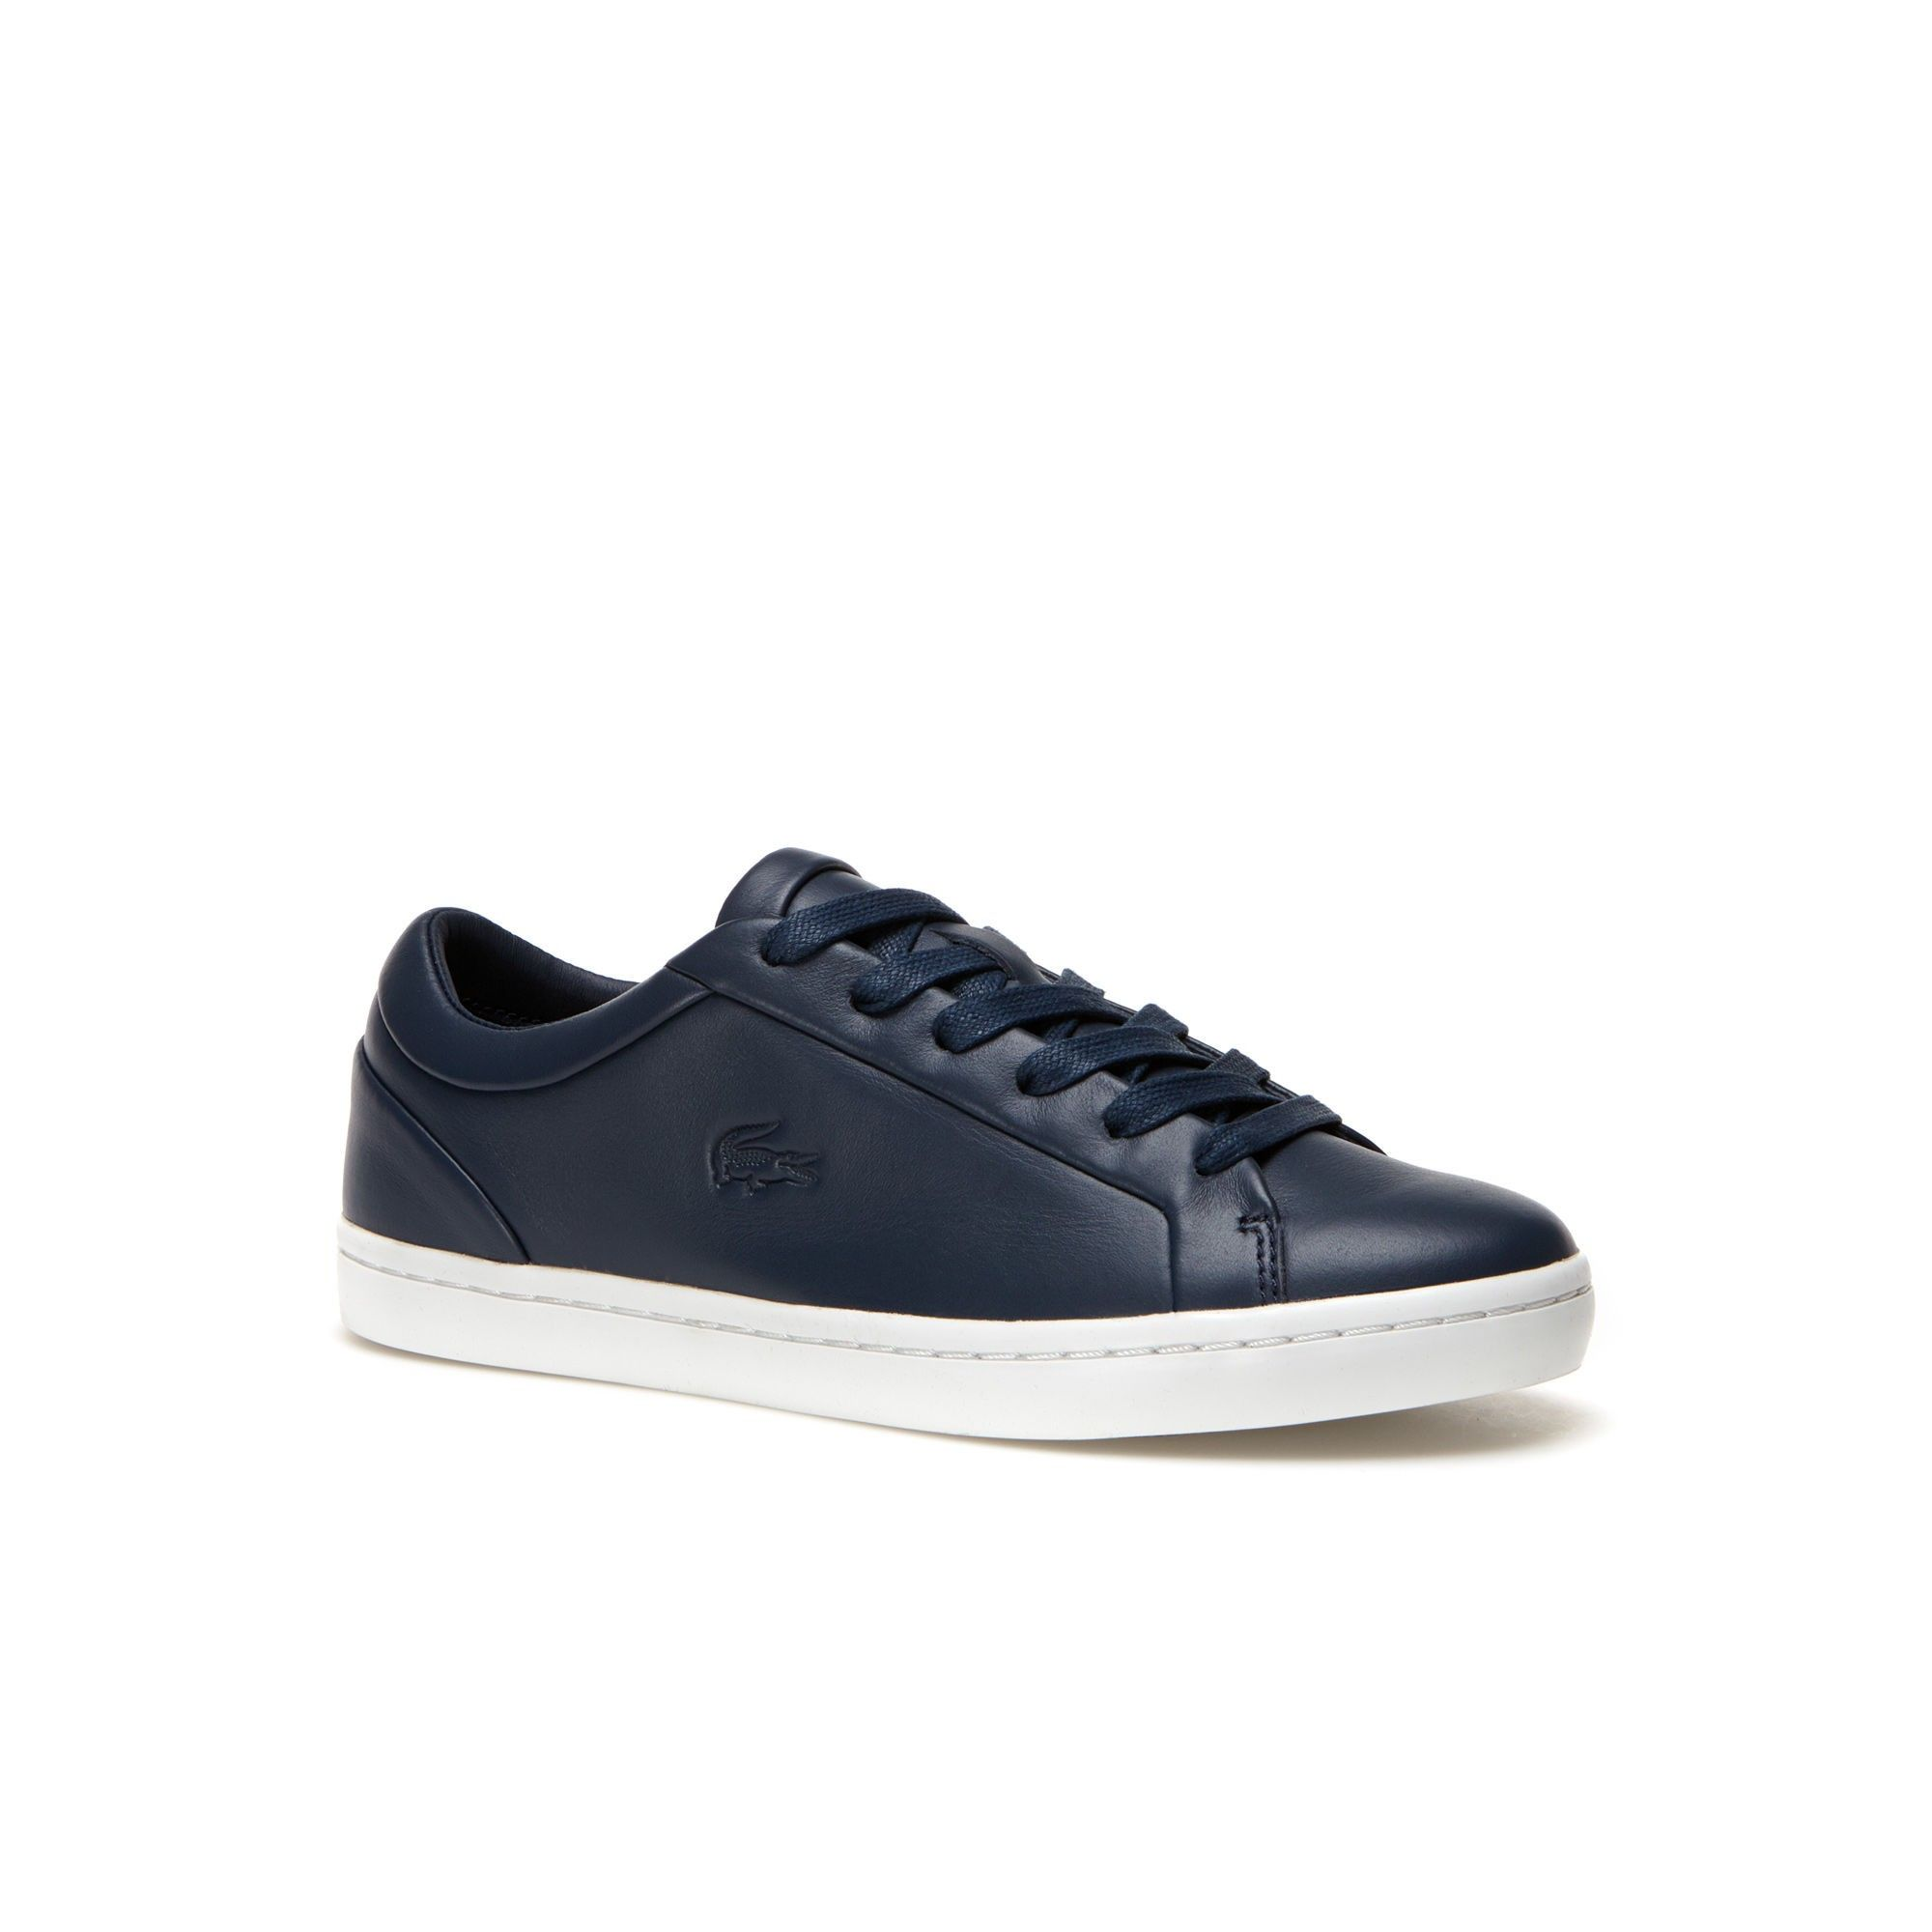 5a80a7b210a777 LACOSTE Women s Straightset Sneakers - 003.  lacoste  shoes  all ...